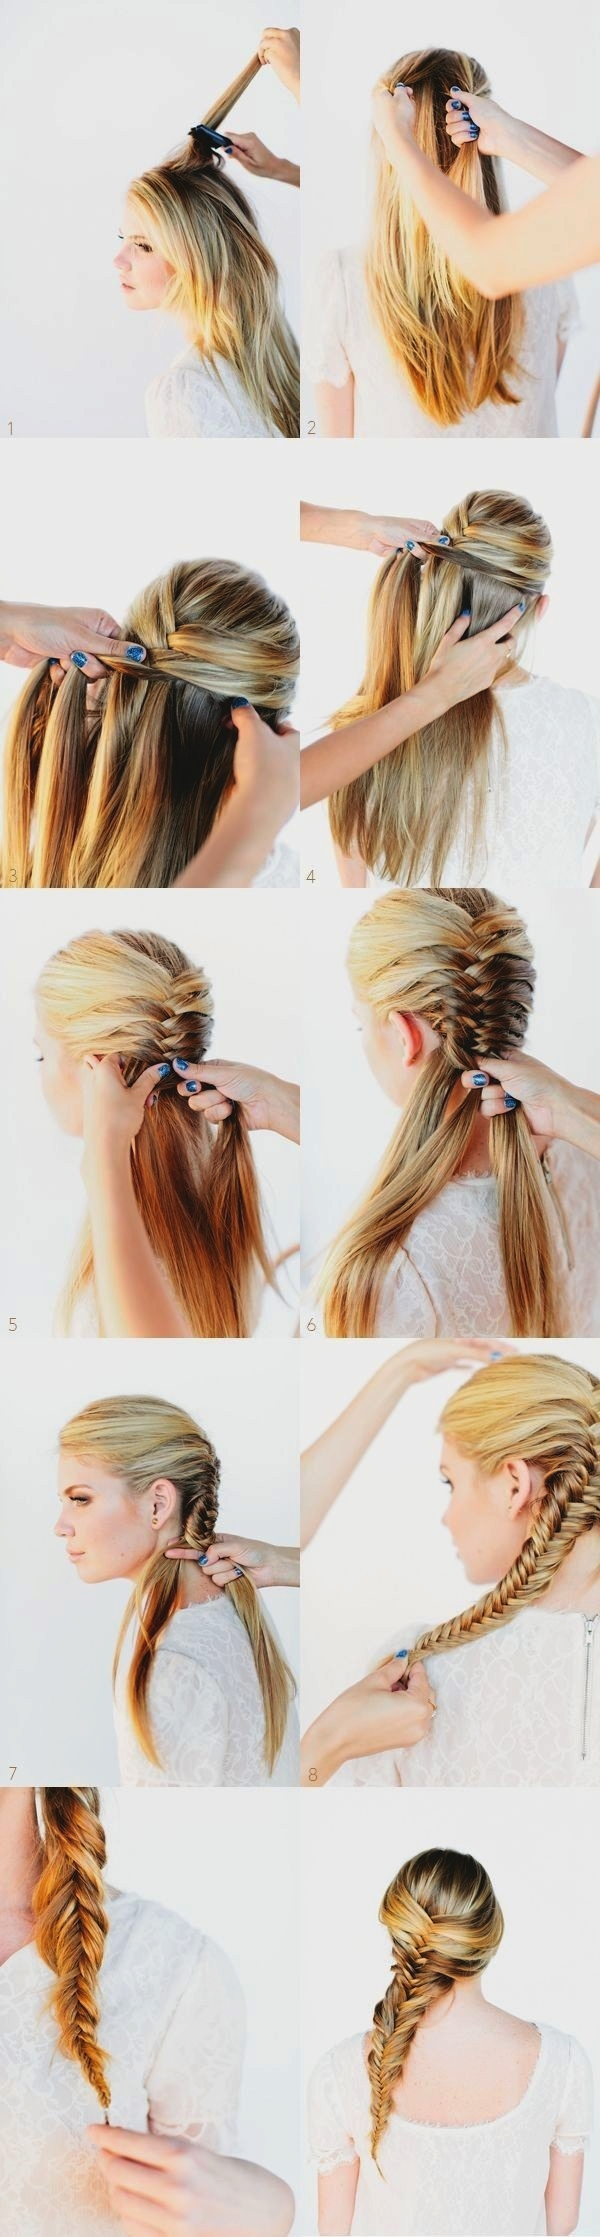 Easy Step By Step Hairstyles for Long Hair1